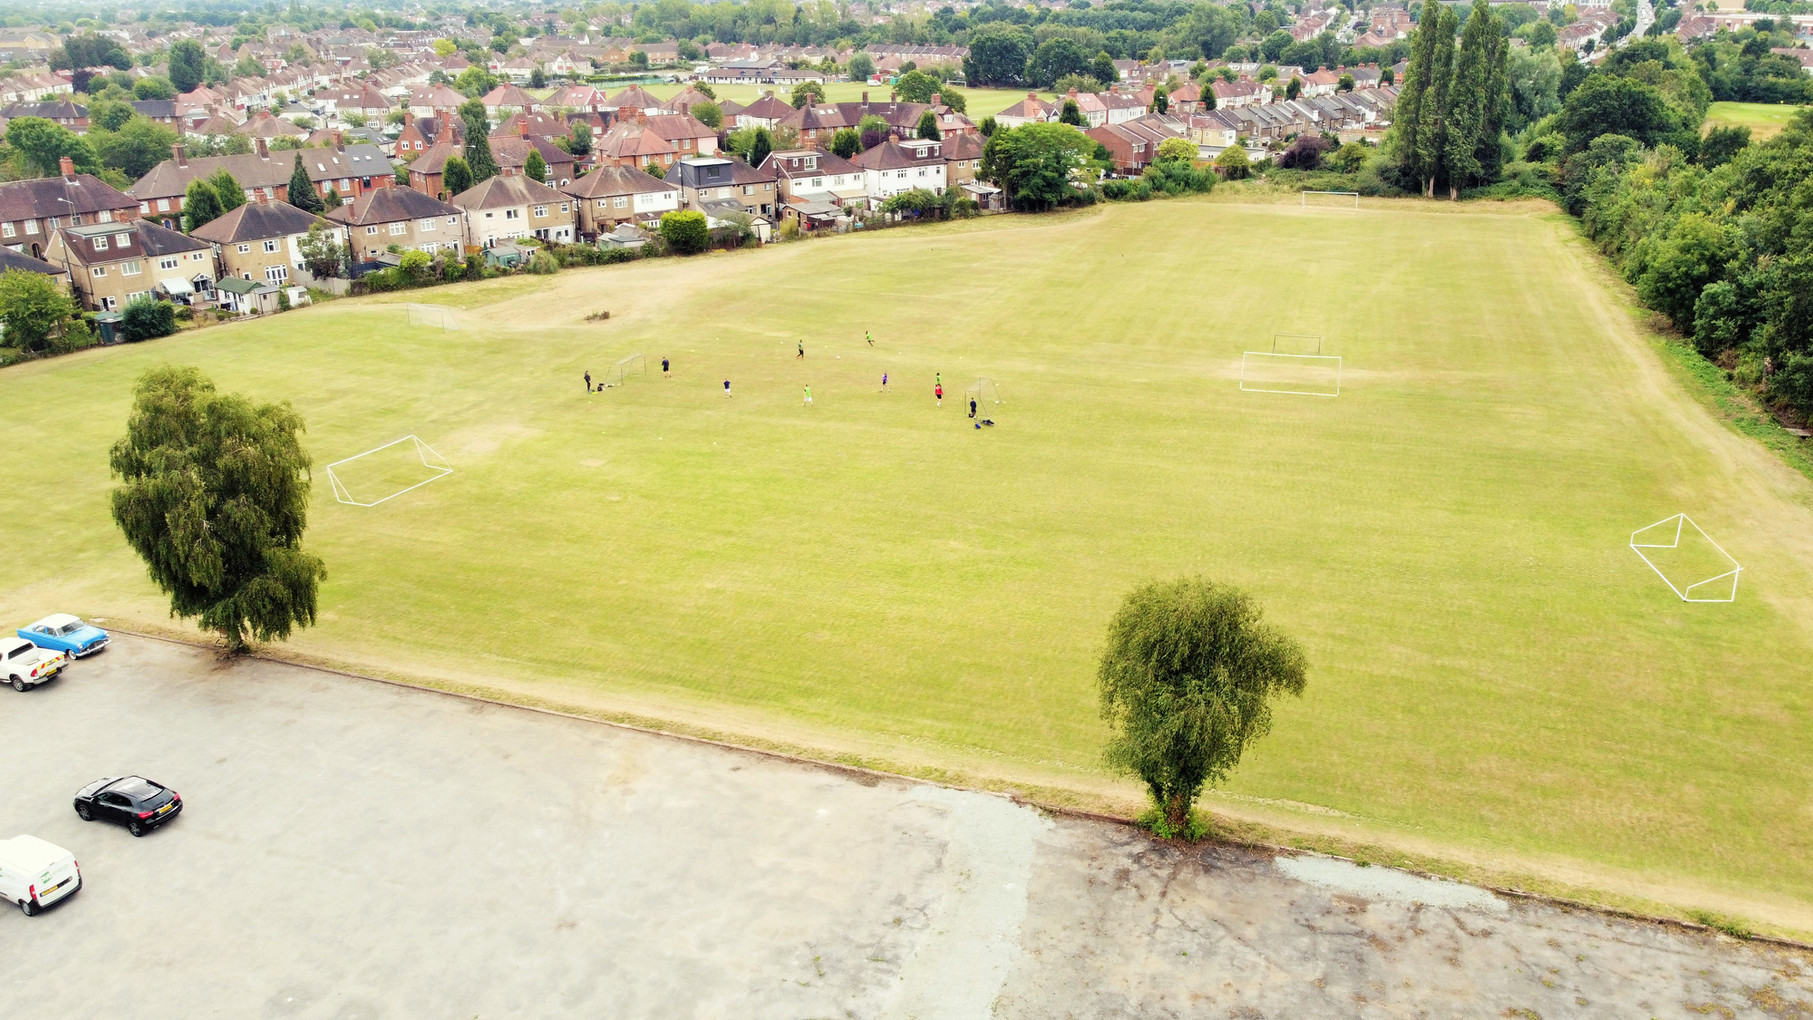 FOOTBALL PITCHES & CLUBHOUSE